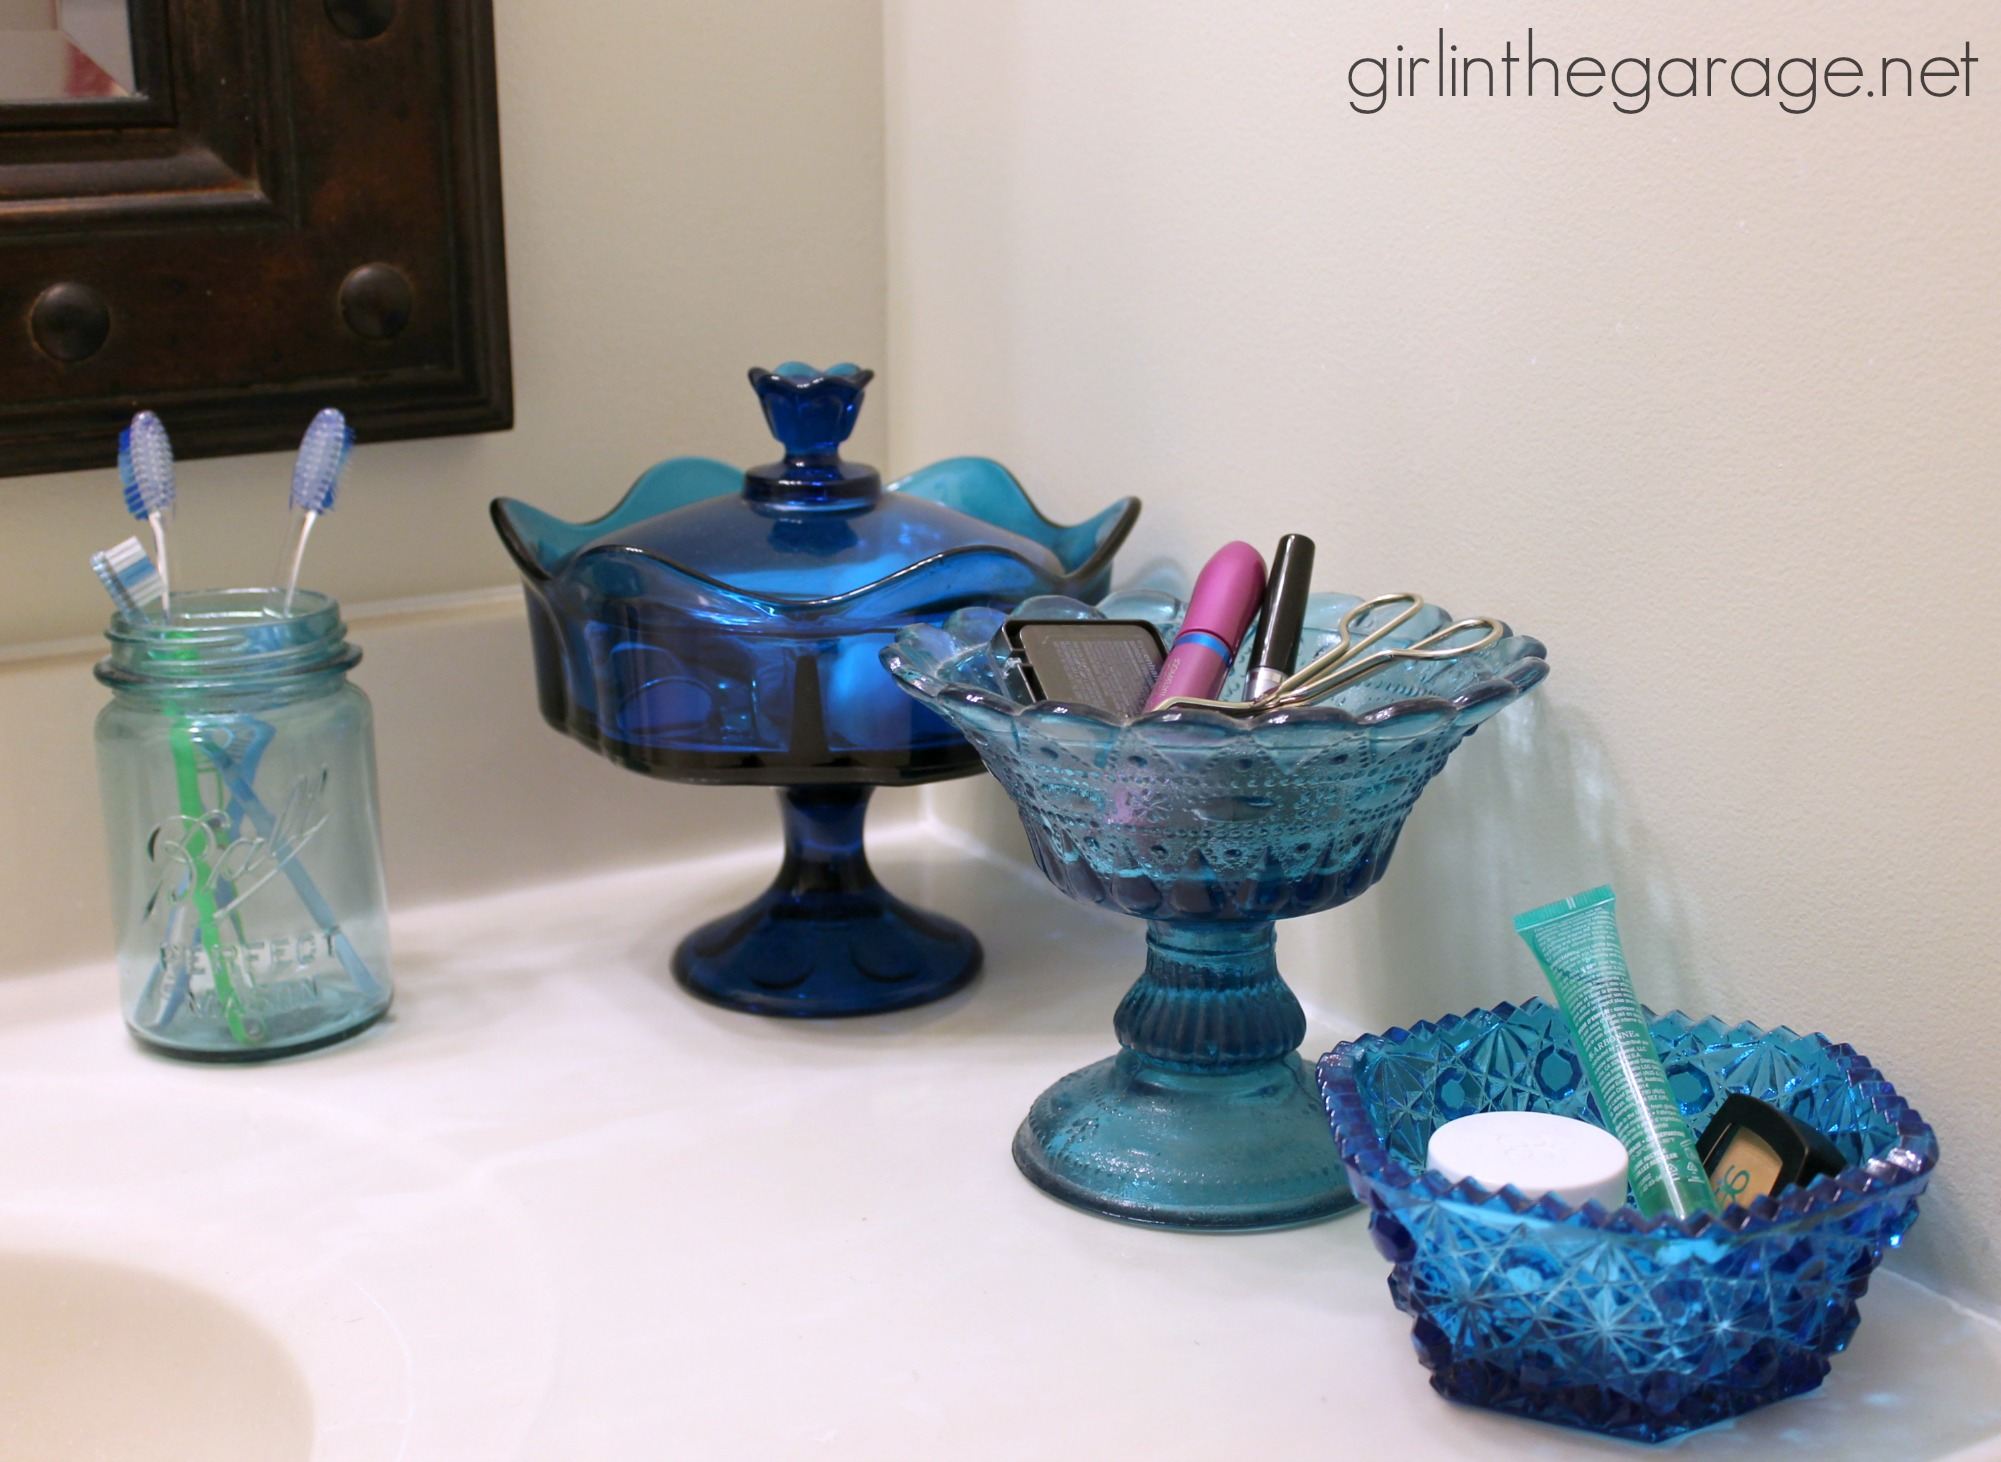 Turquoise And Purple Bathroom. Vintage Turquoise Glass Used For Storage And Organization In The Bathroom Girlinthegarage Net